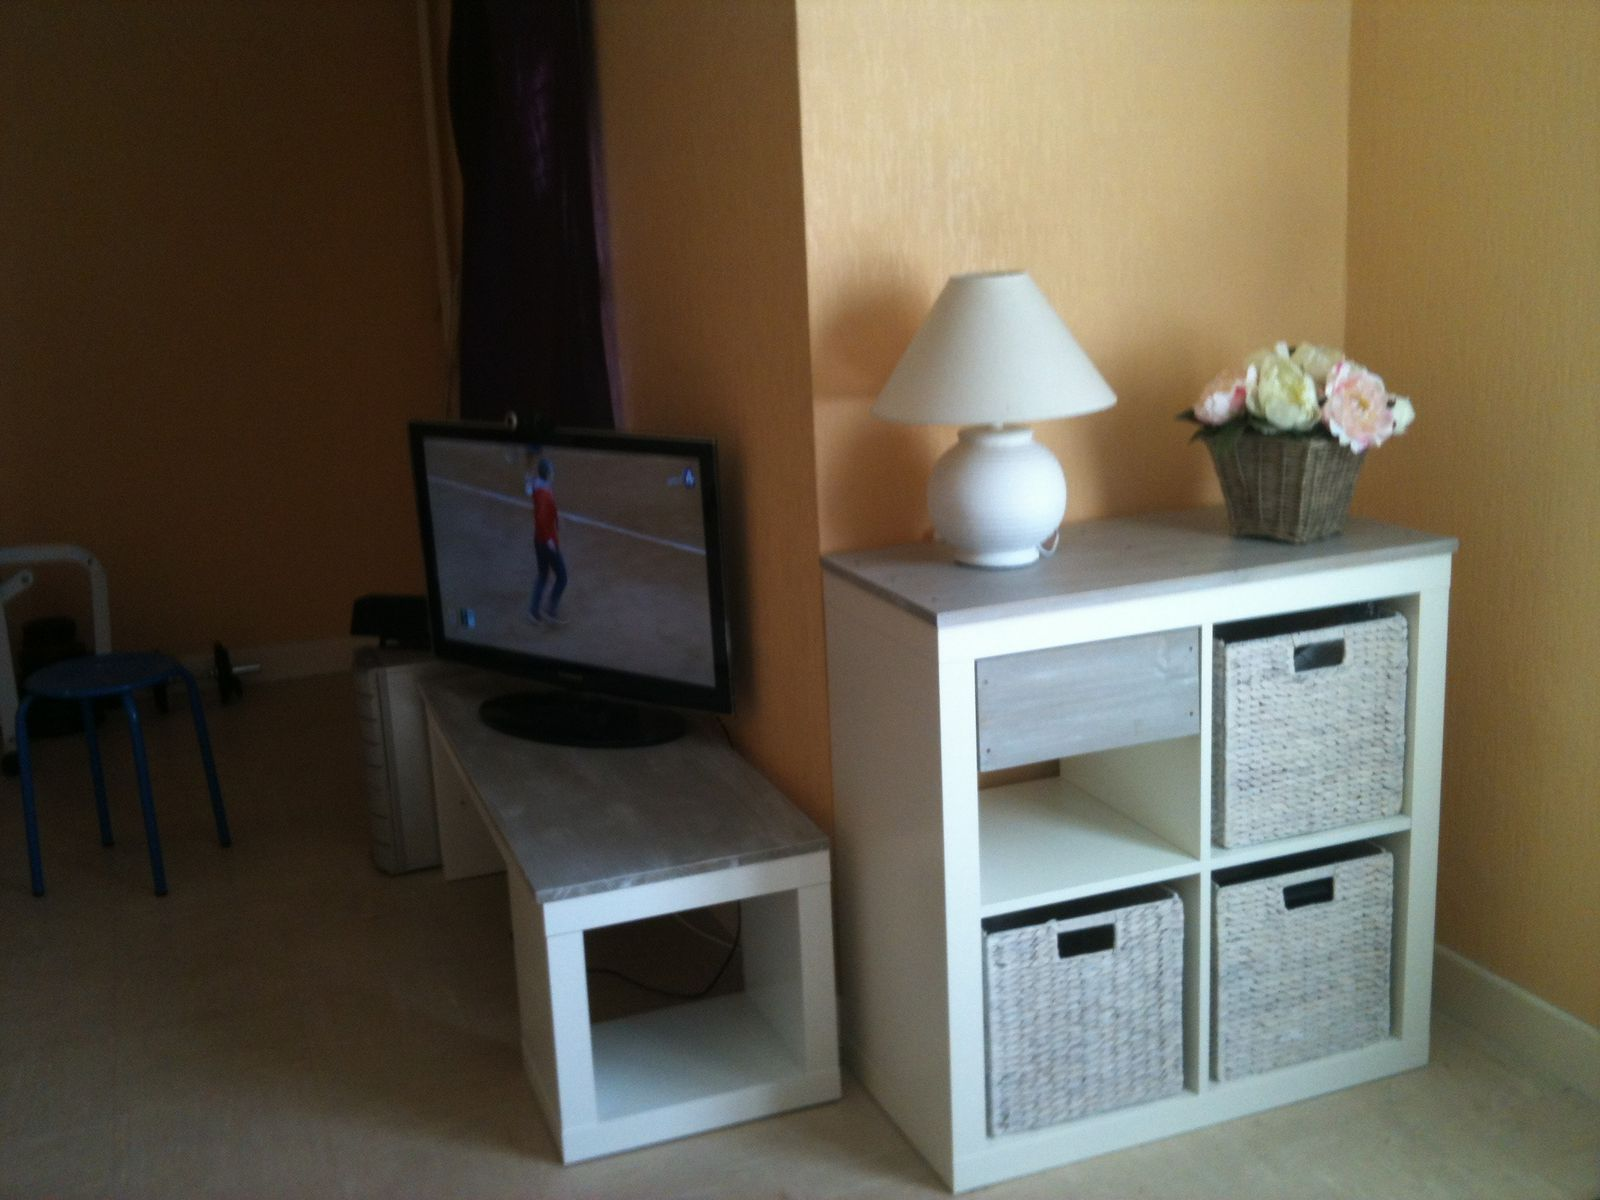 album relookage table lack ika en meuble tv kakinou cration - Meuble Tv Noir Ikea Lack